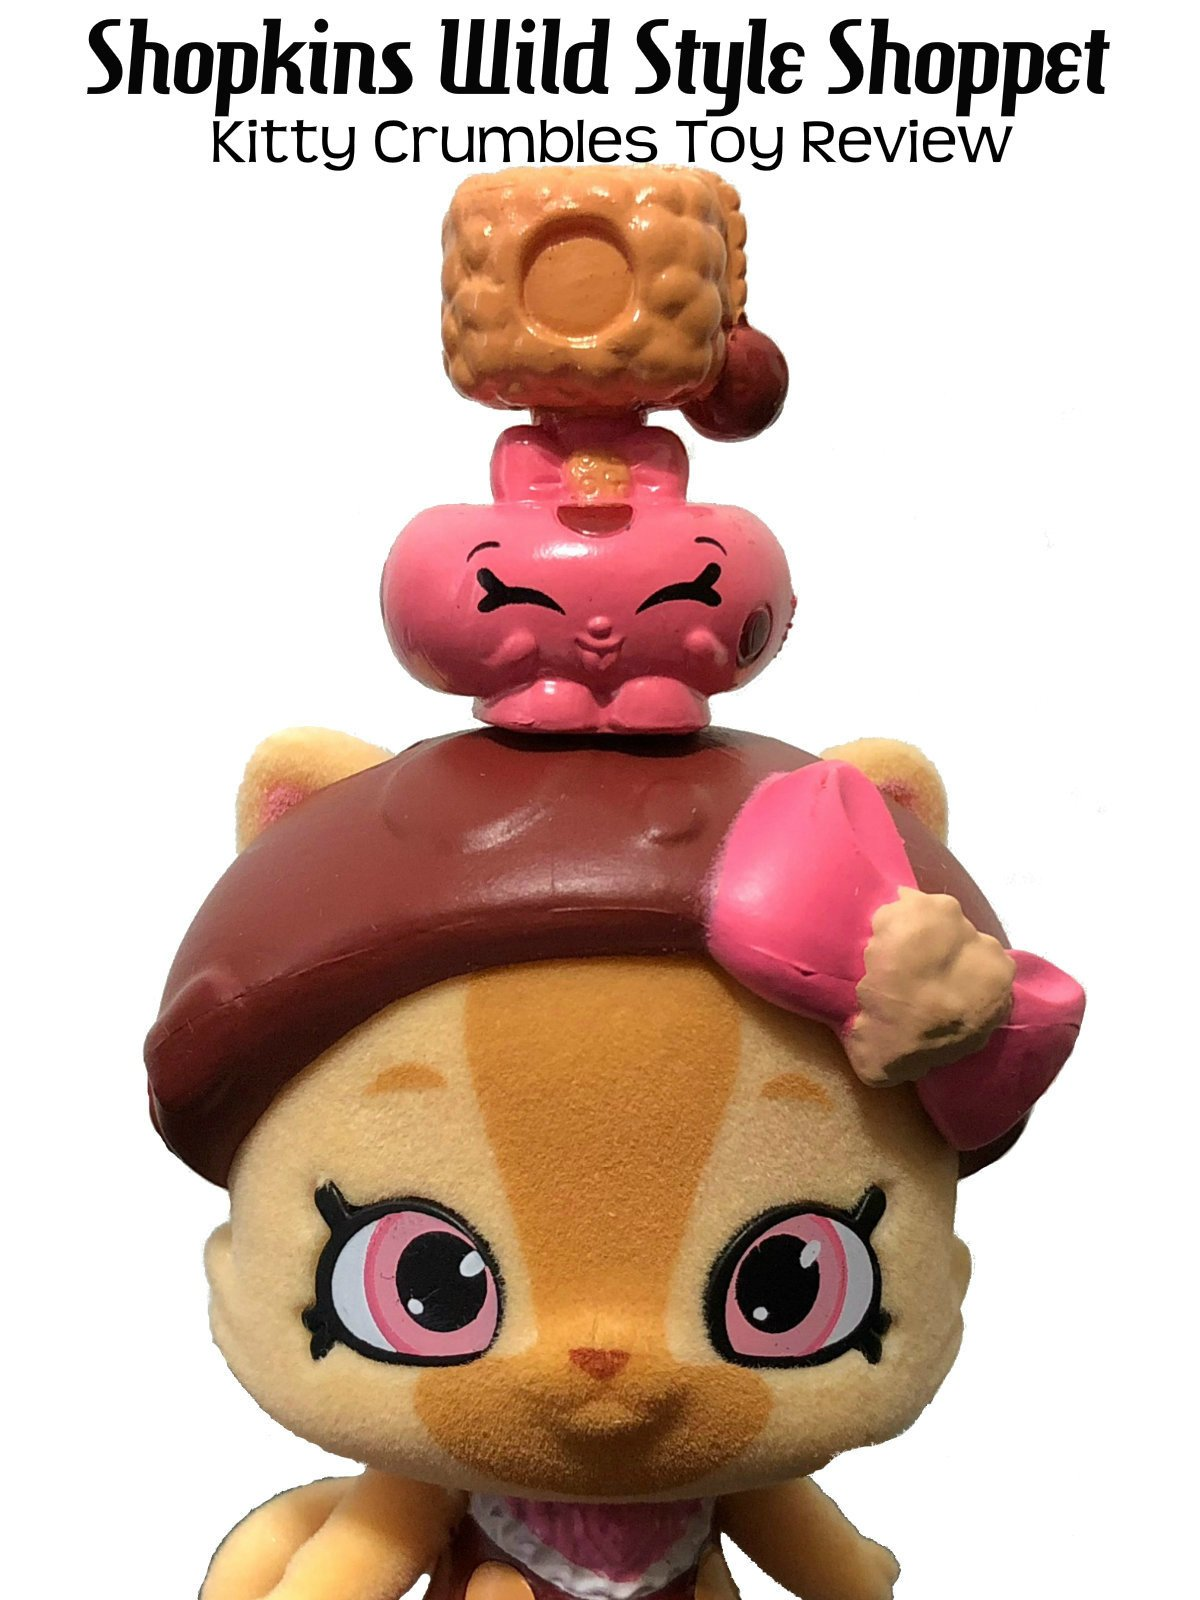 Review: Shopkins Wild Style Shoppet Kitty Crumbles Toy Review